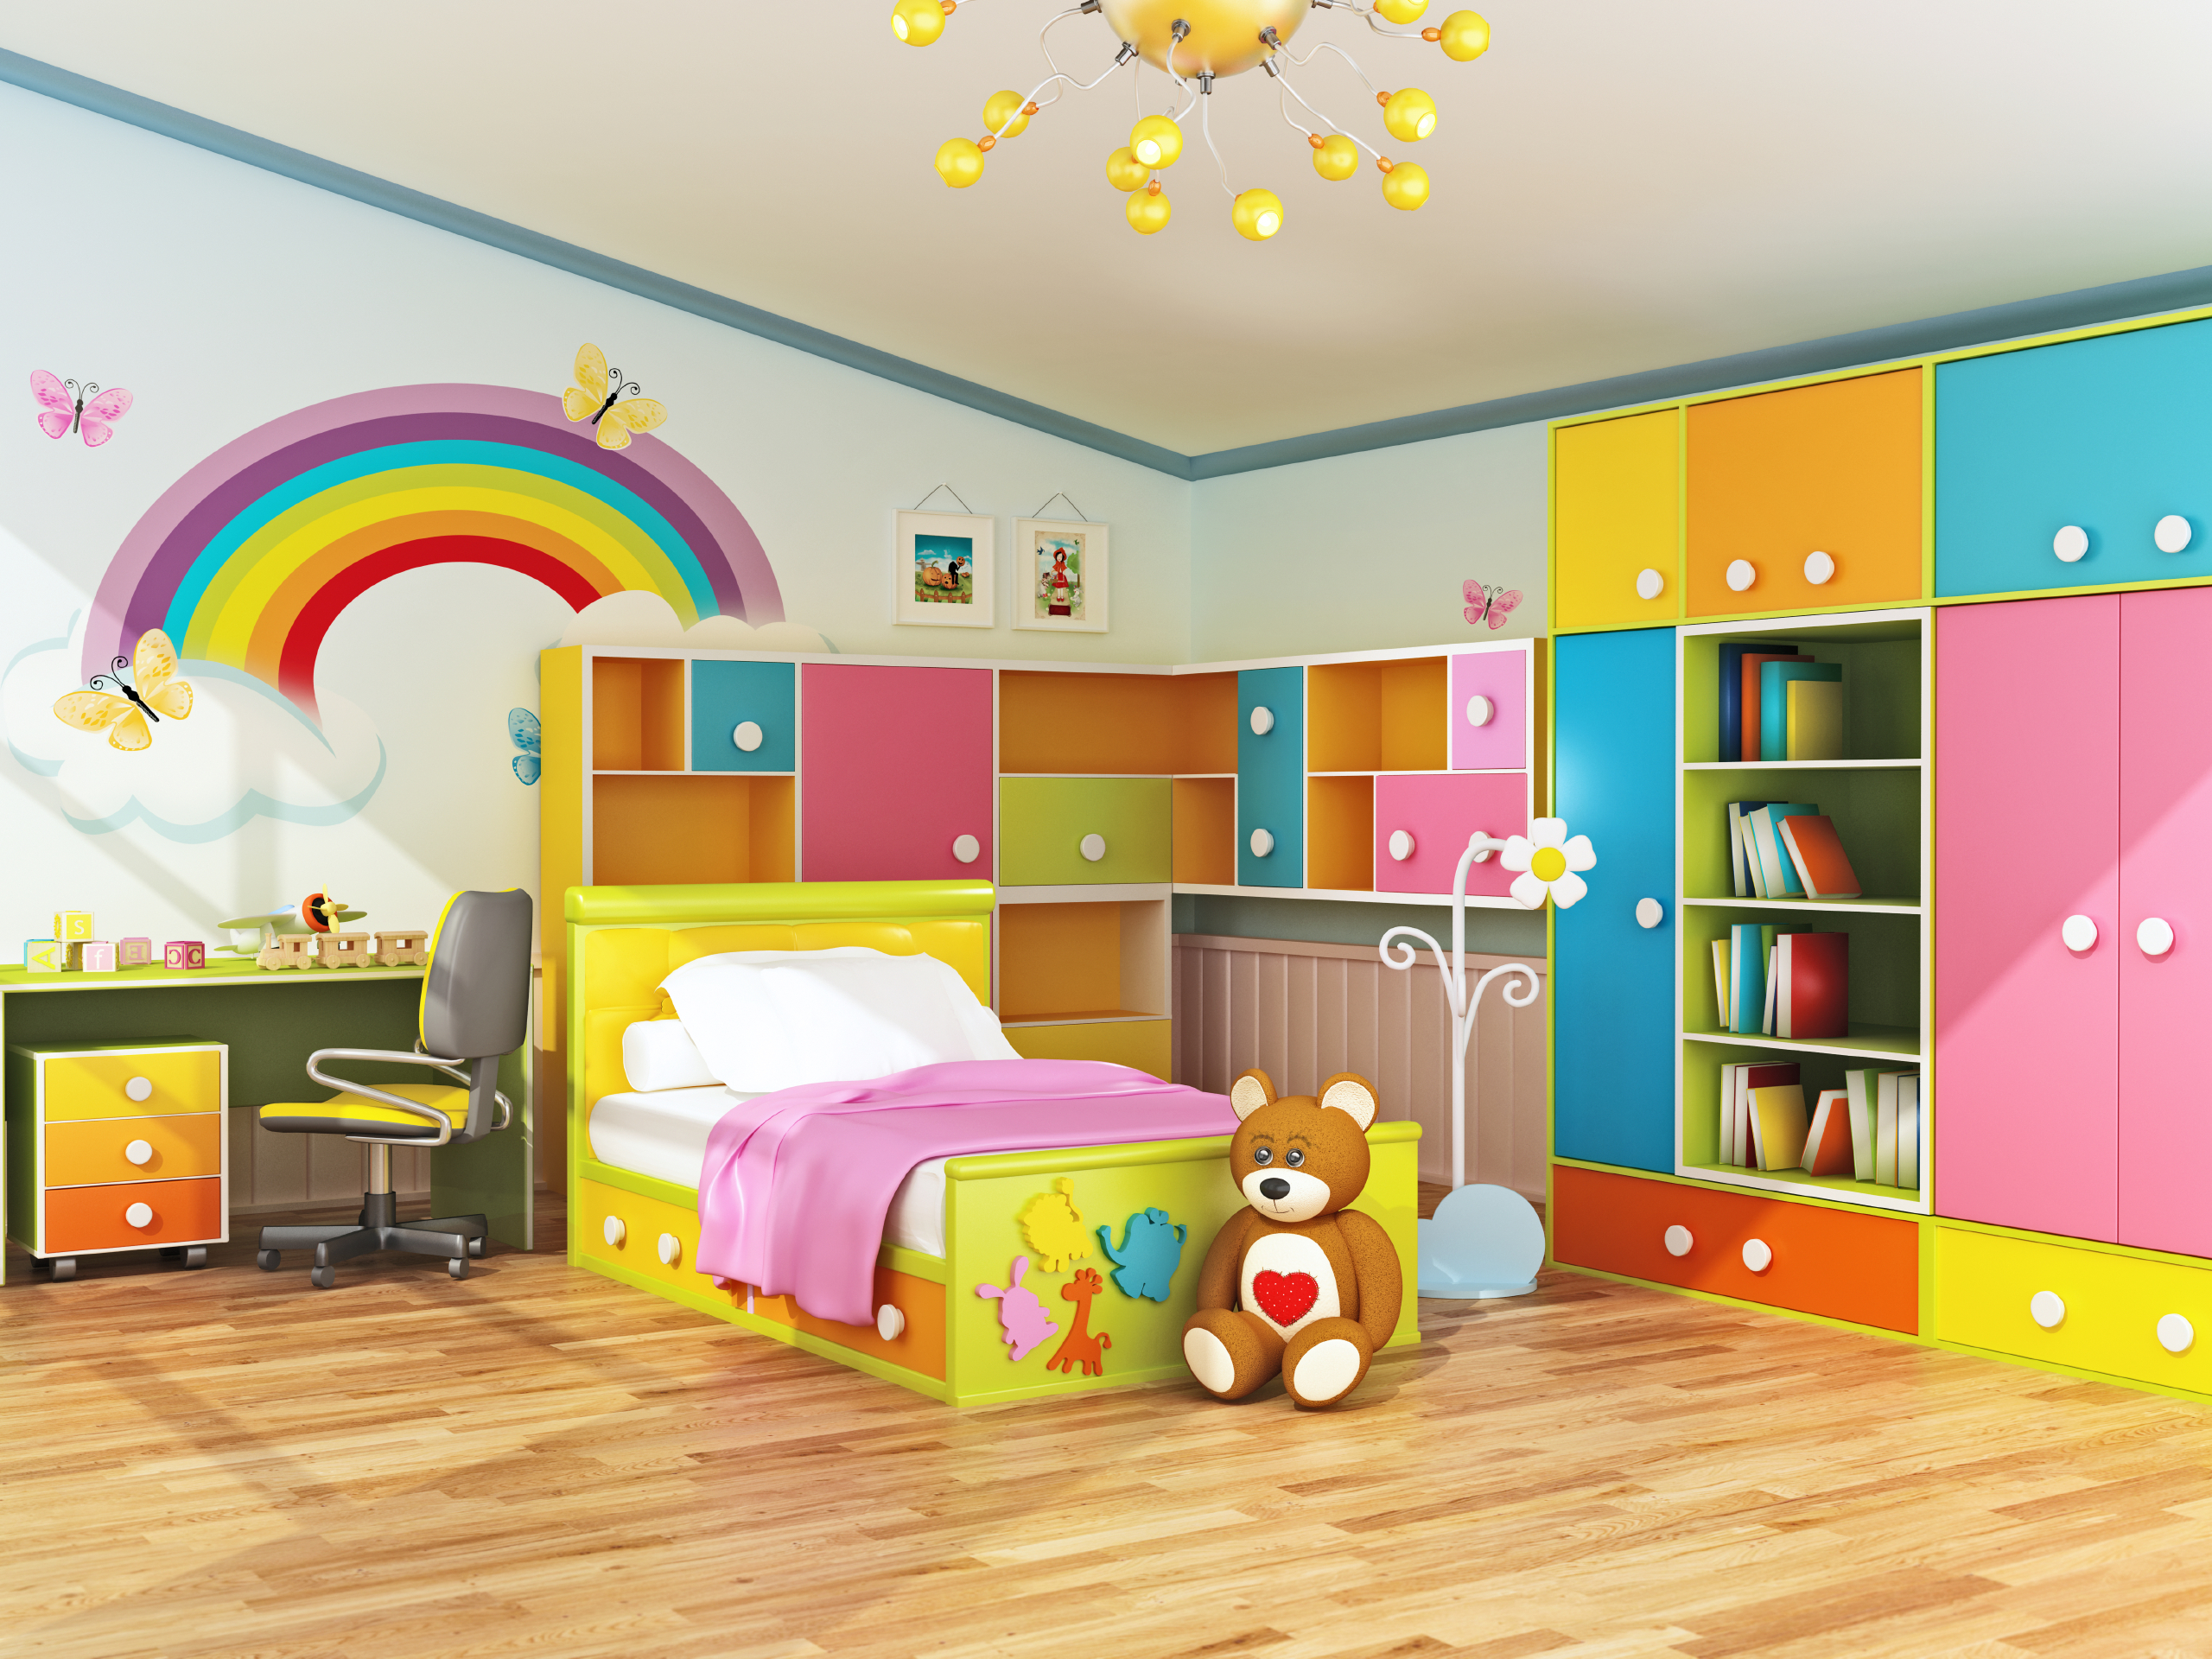 Plan ahead when decorating kids 39 bedrooms rismedia 39 s for Interior design for kid bedroom